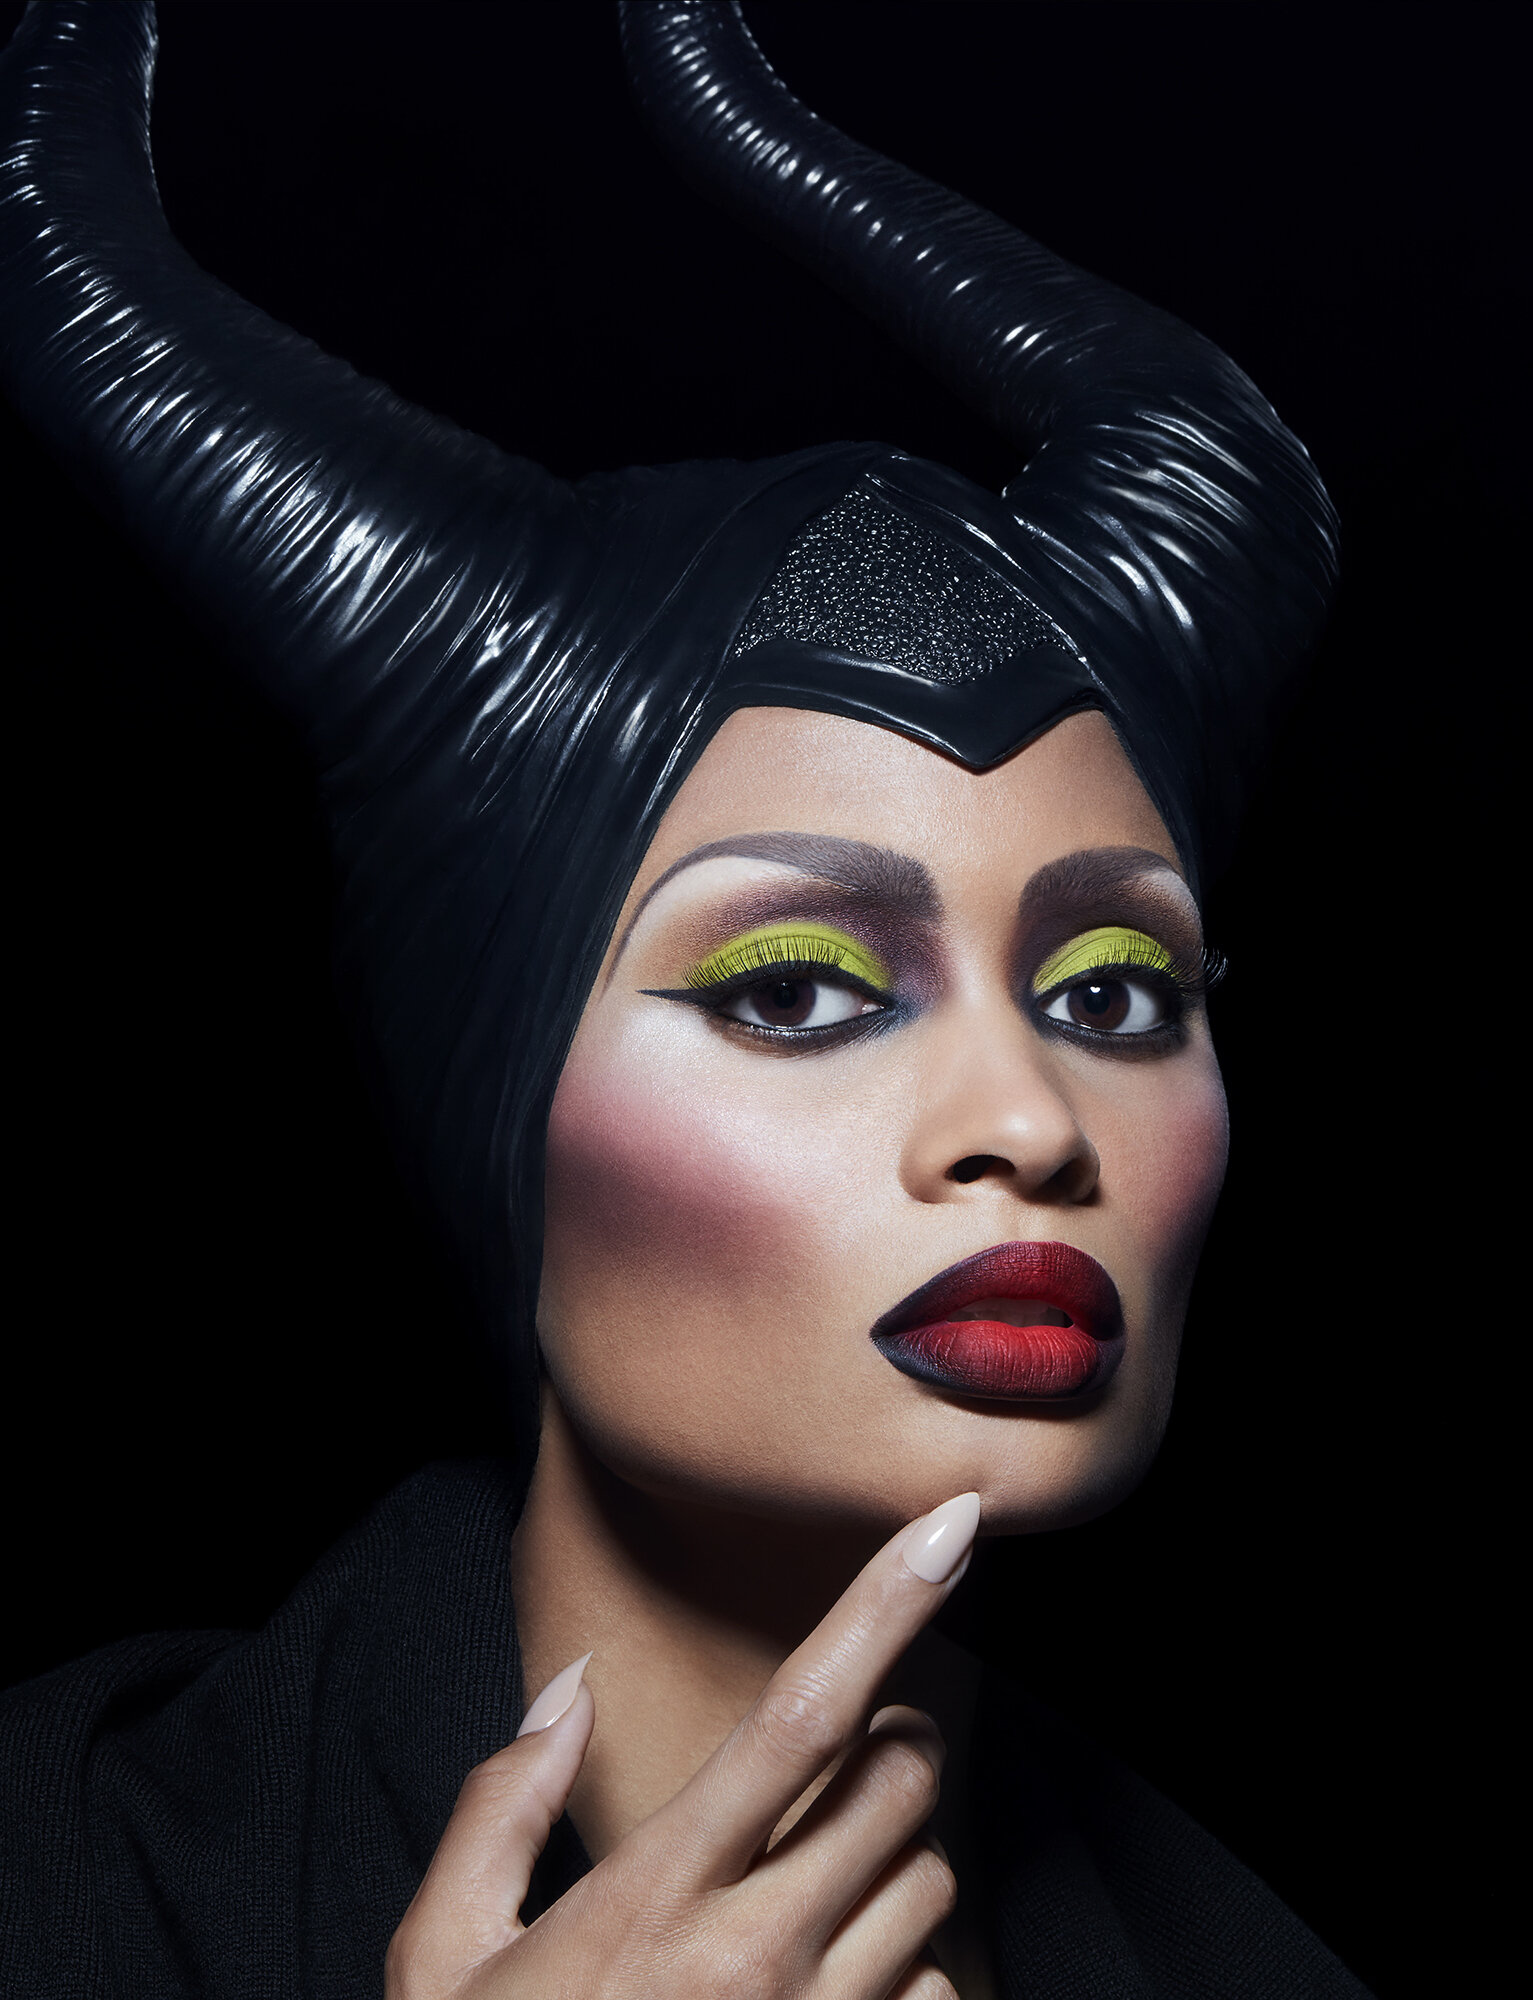 191031_MacCosmetics_Maleficent_Evil_By_BriJohnsonStudios.jpg.jpg